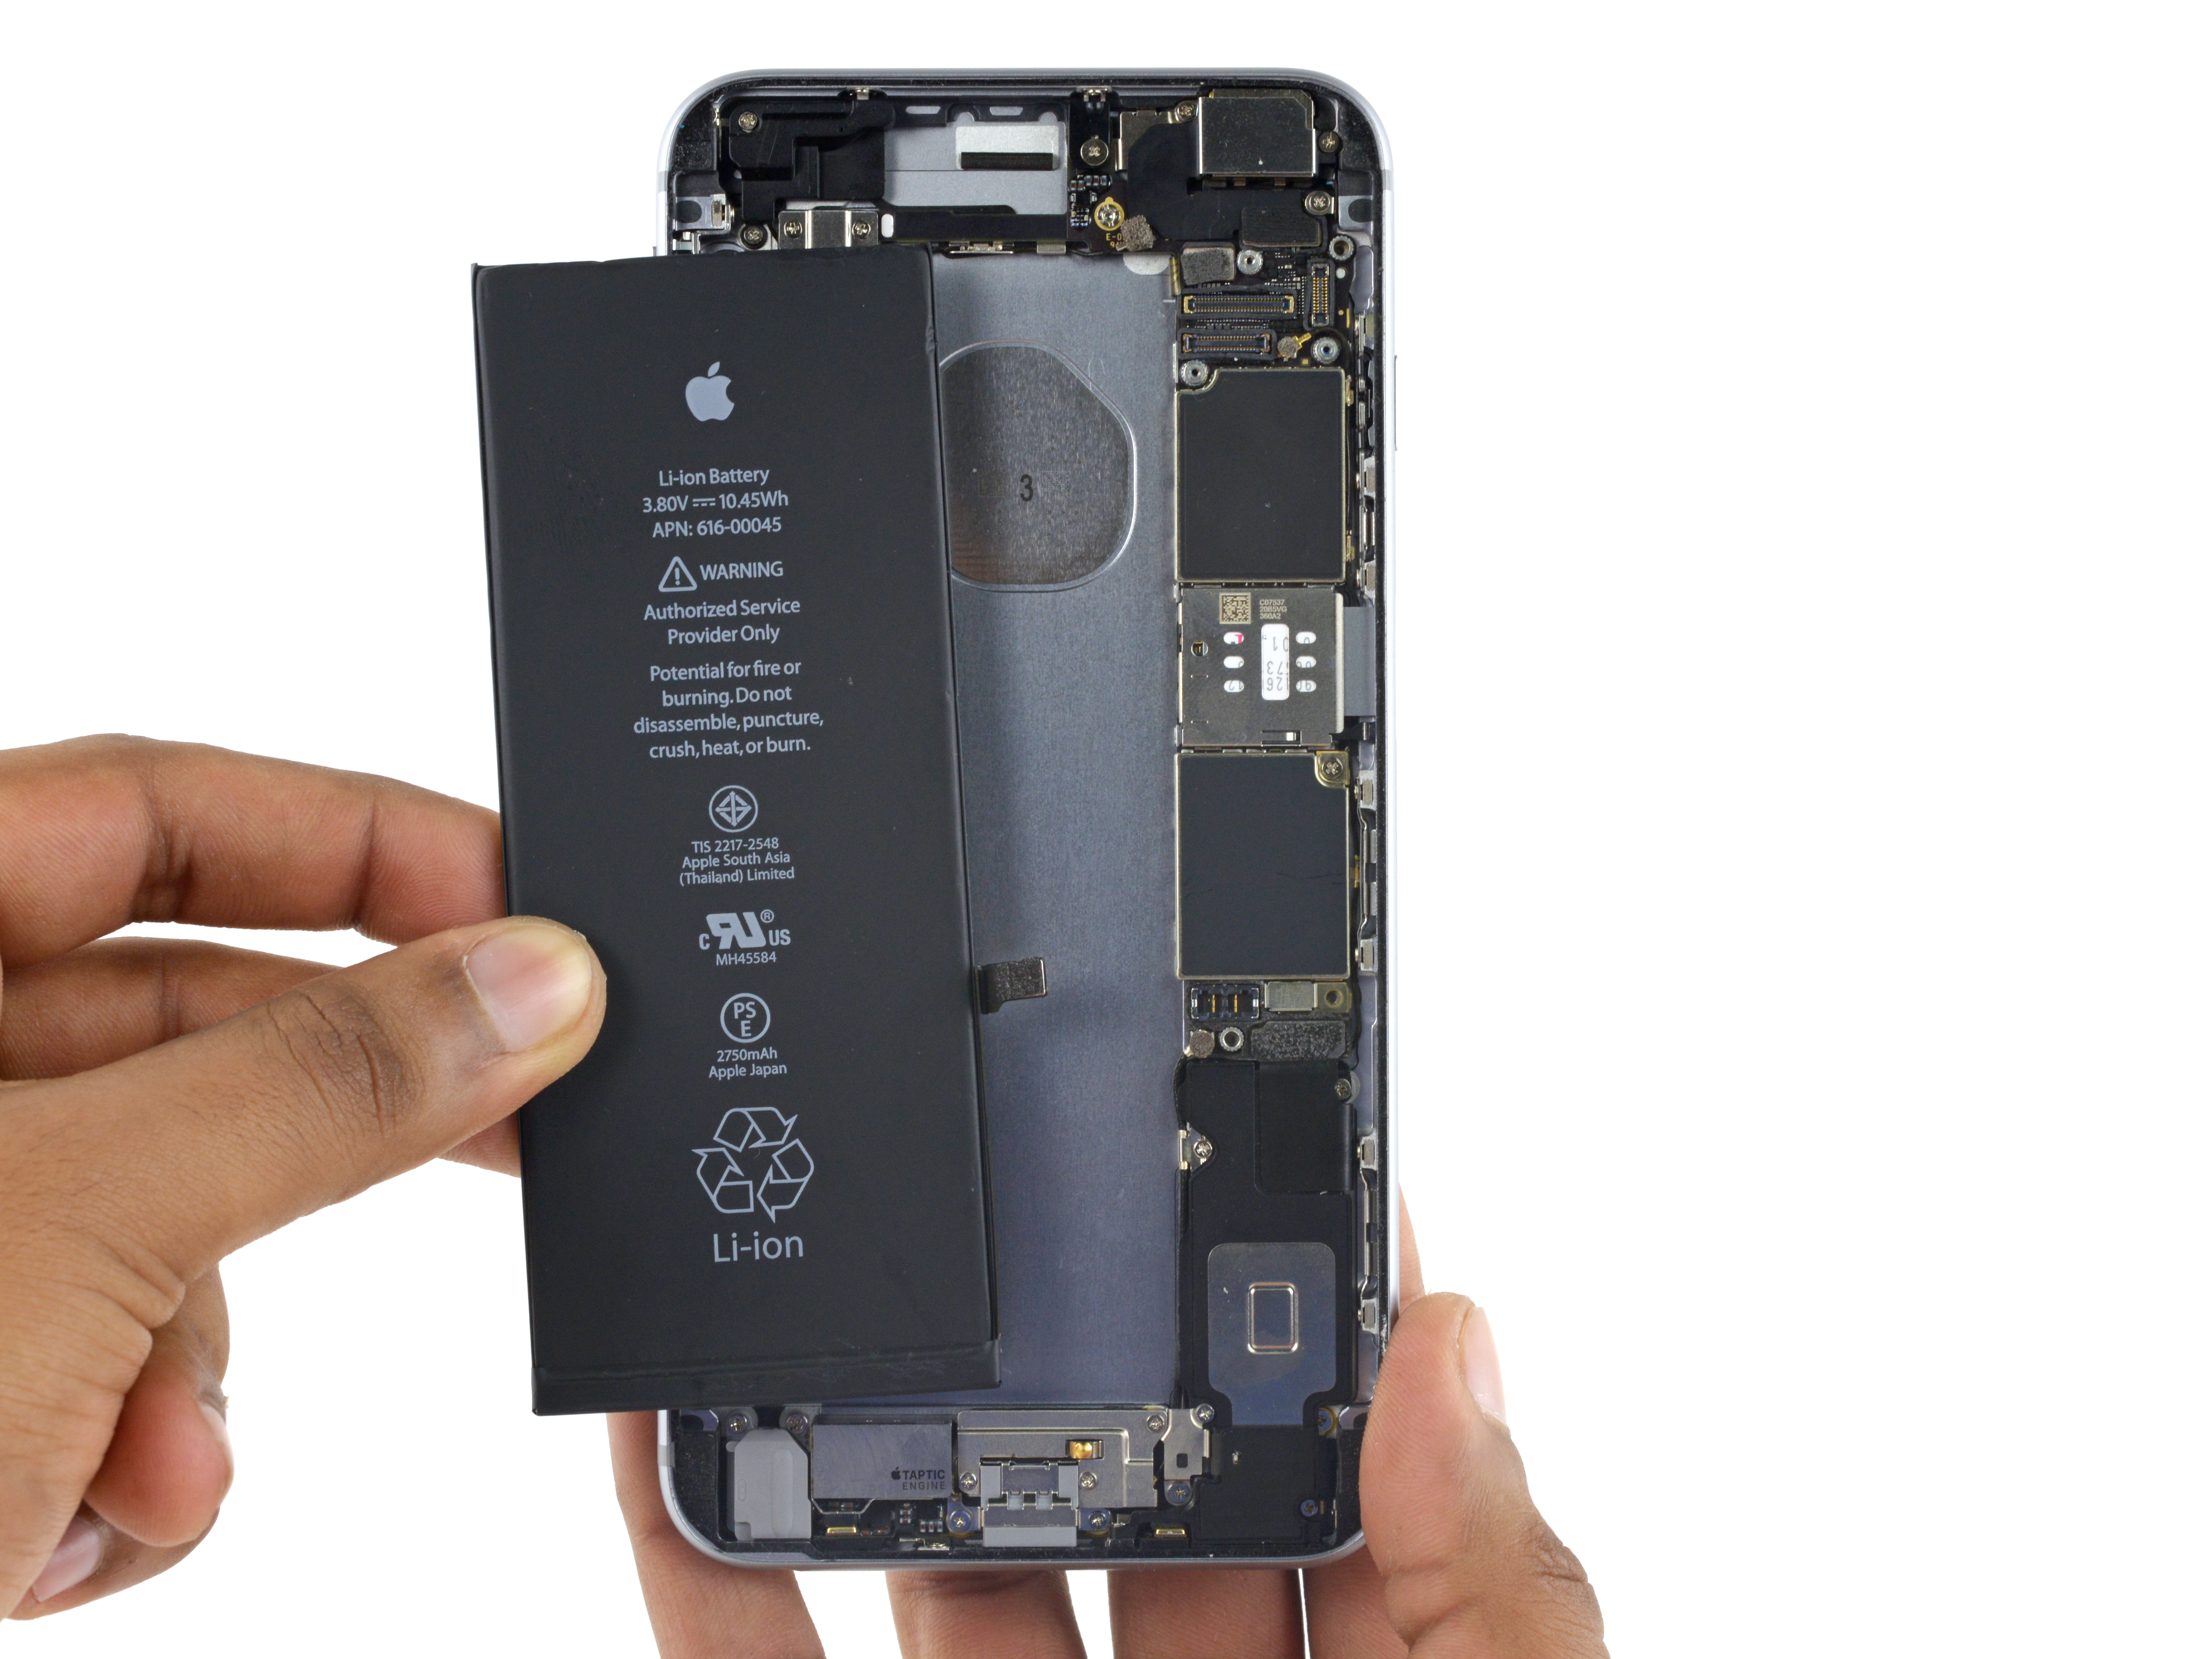 iphone 6s plus battery replacement ifixit repair guide. Black Bedroom Furniture Sets. Home Design Ideas